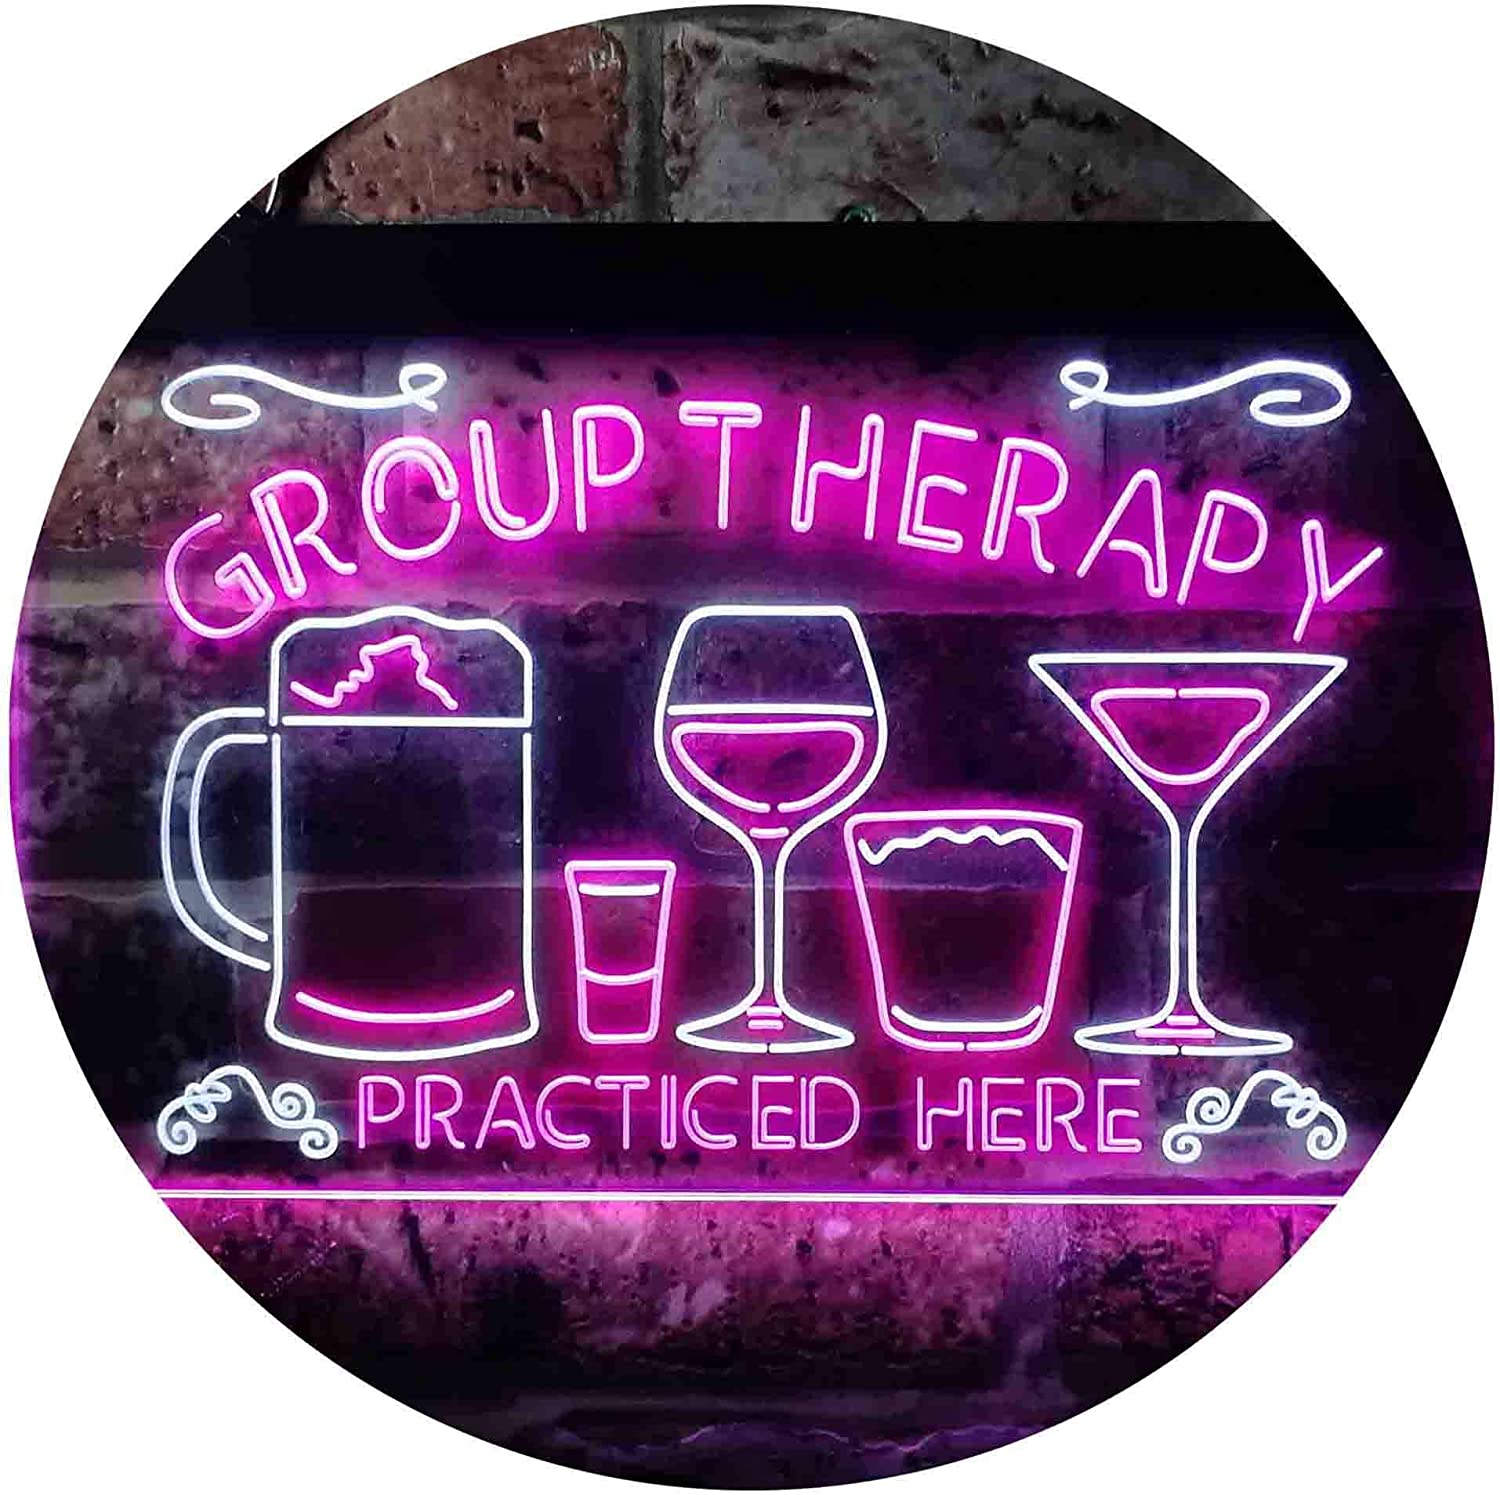 ADVPRO Beer Cocktails Group Therapy 2021 Dual Here Co Practiced Humor outlet